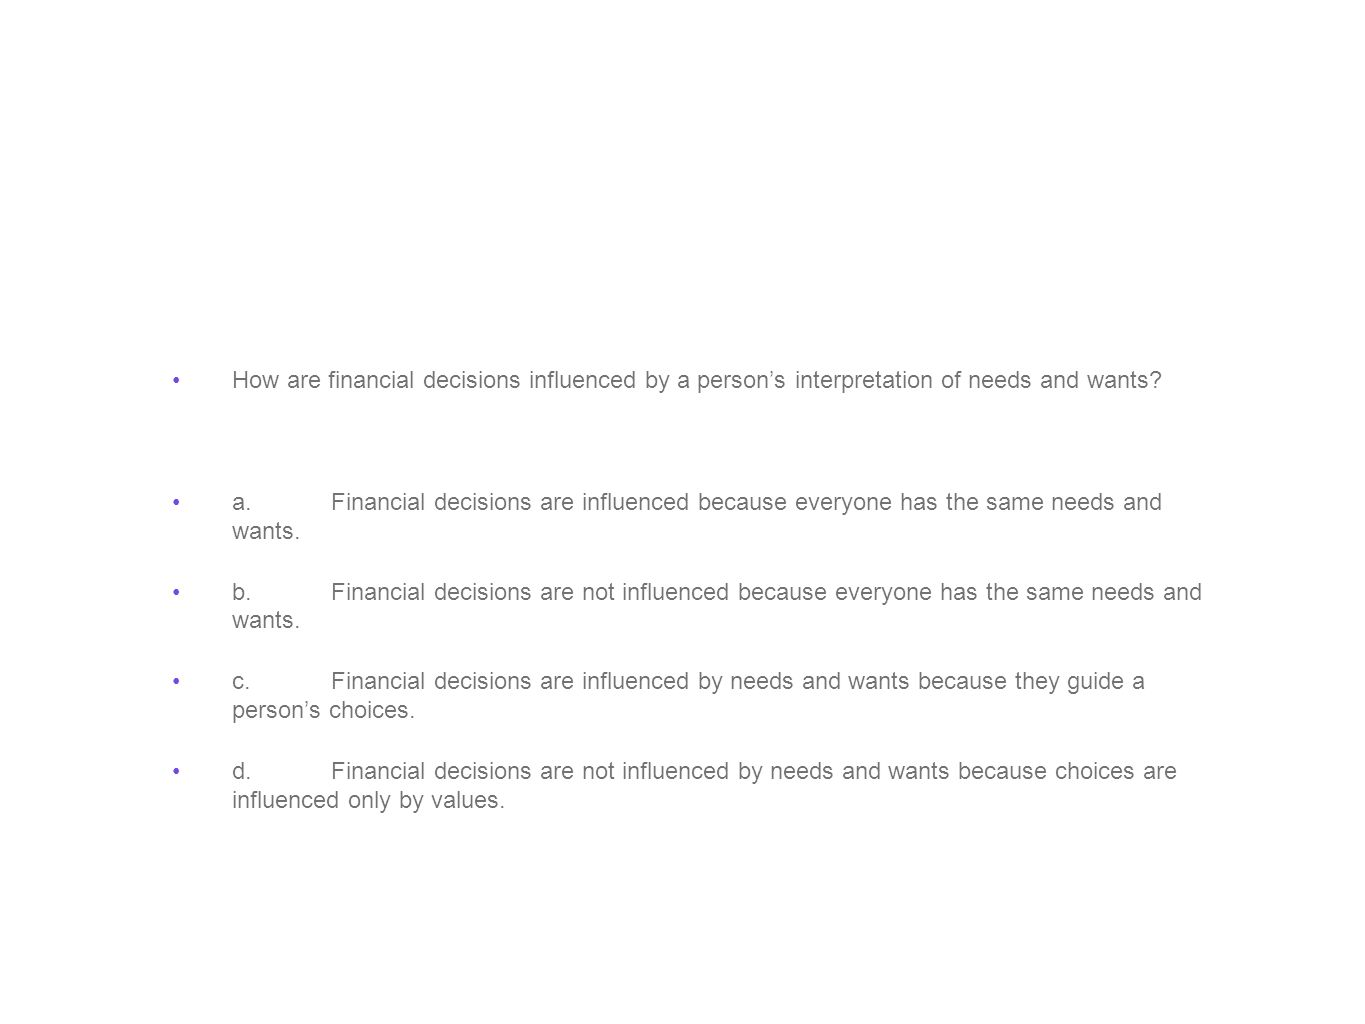 How are financial decisions influenced by a person's interpretation of needs and wants